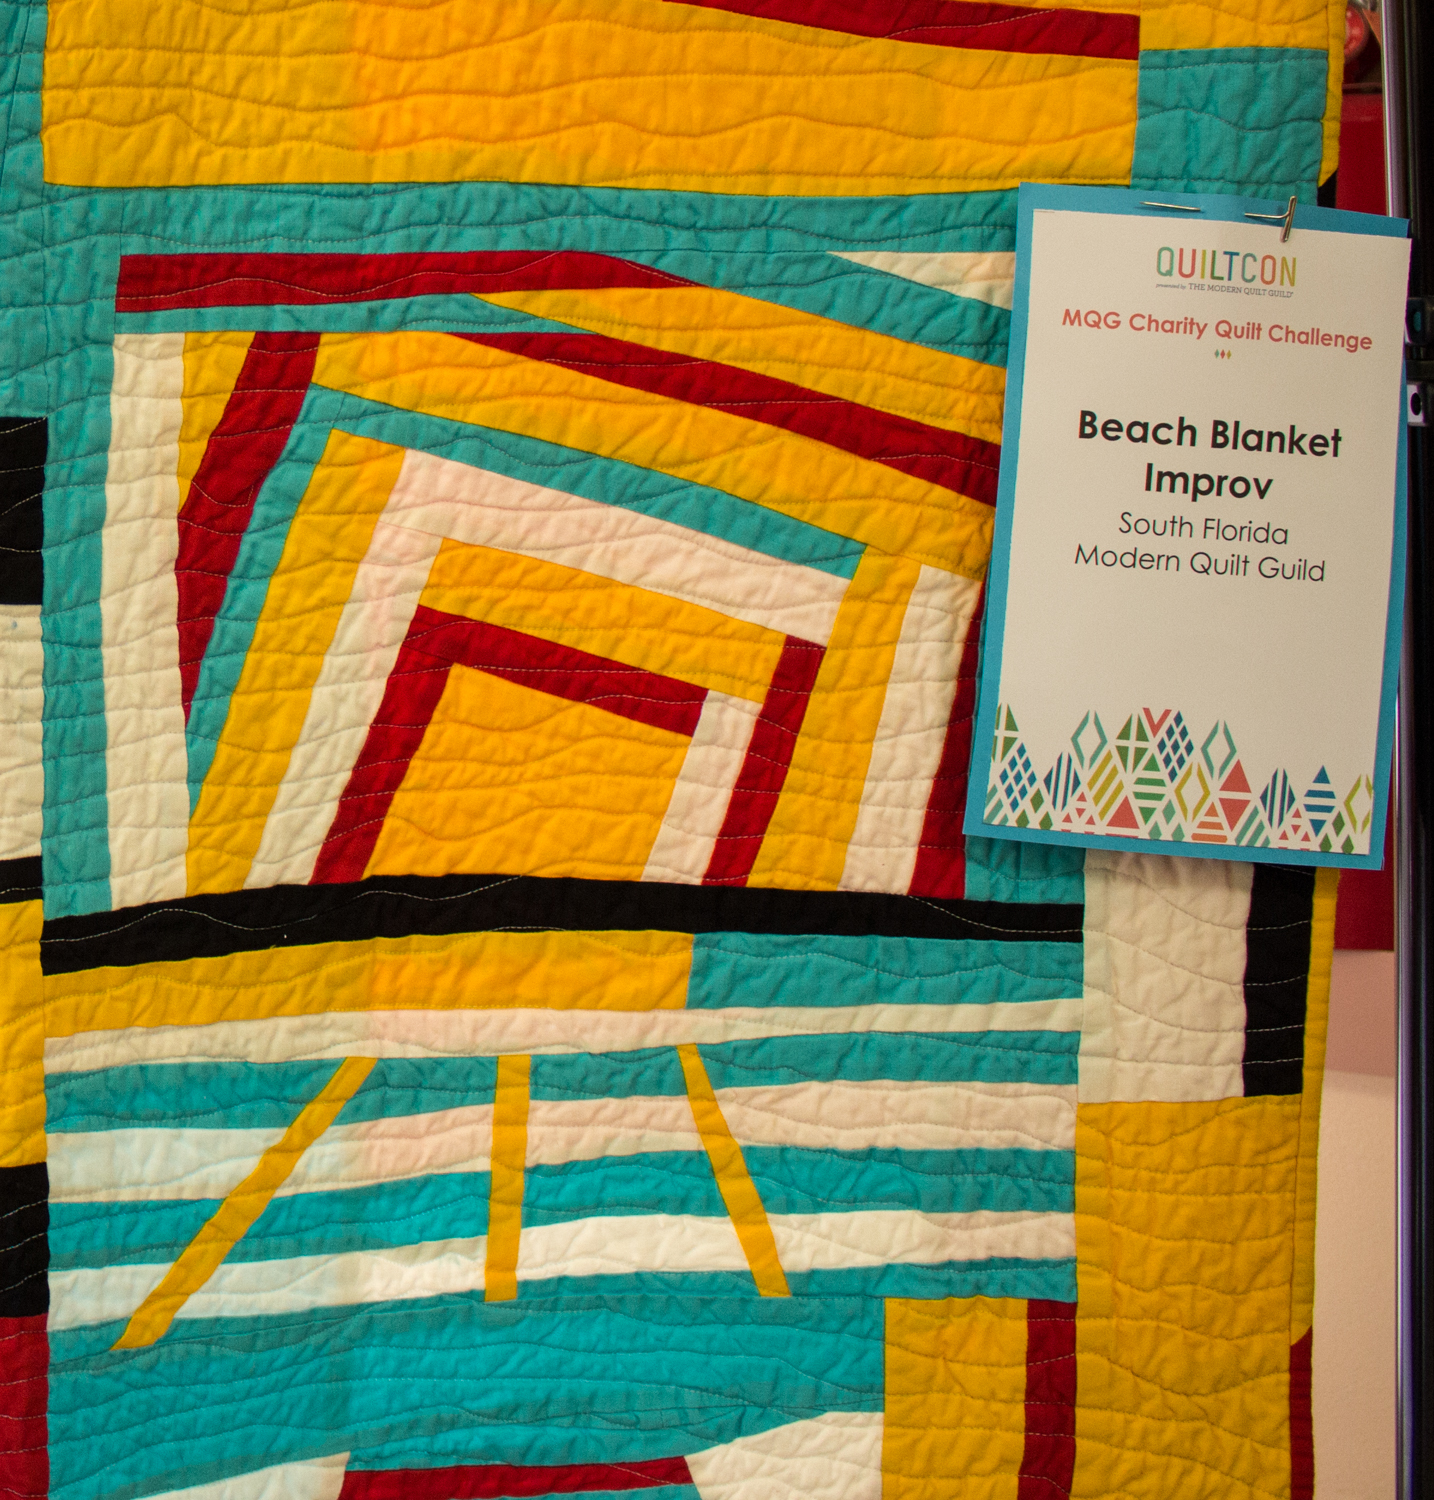 Our Quiltcon quilt made it home!